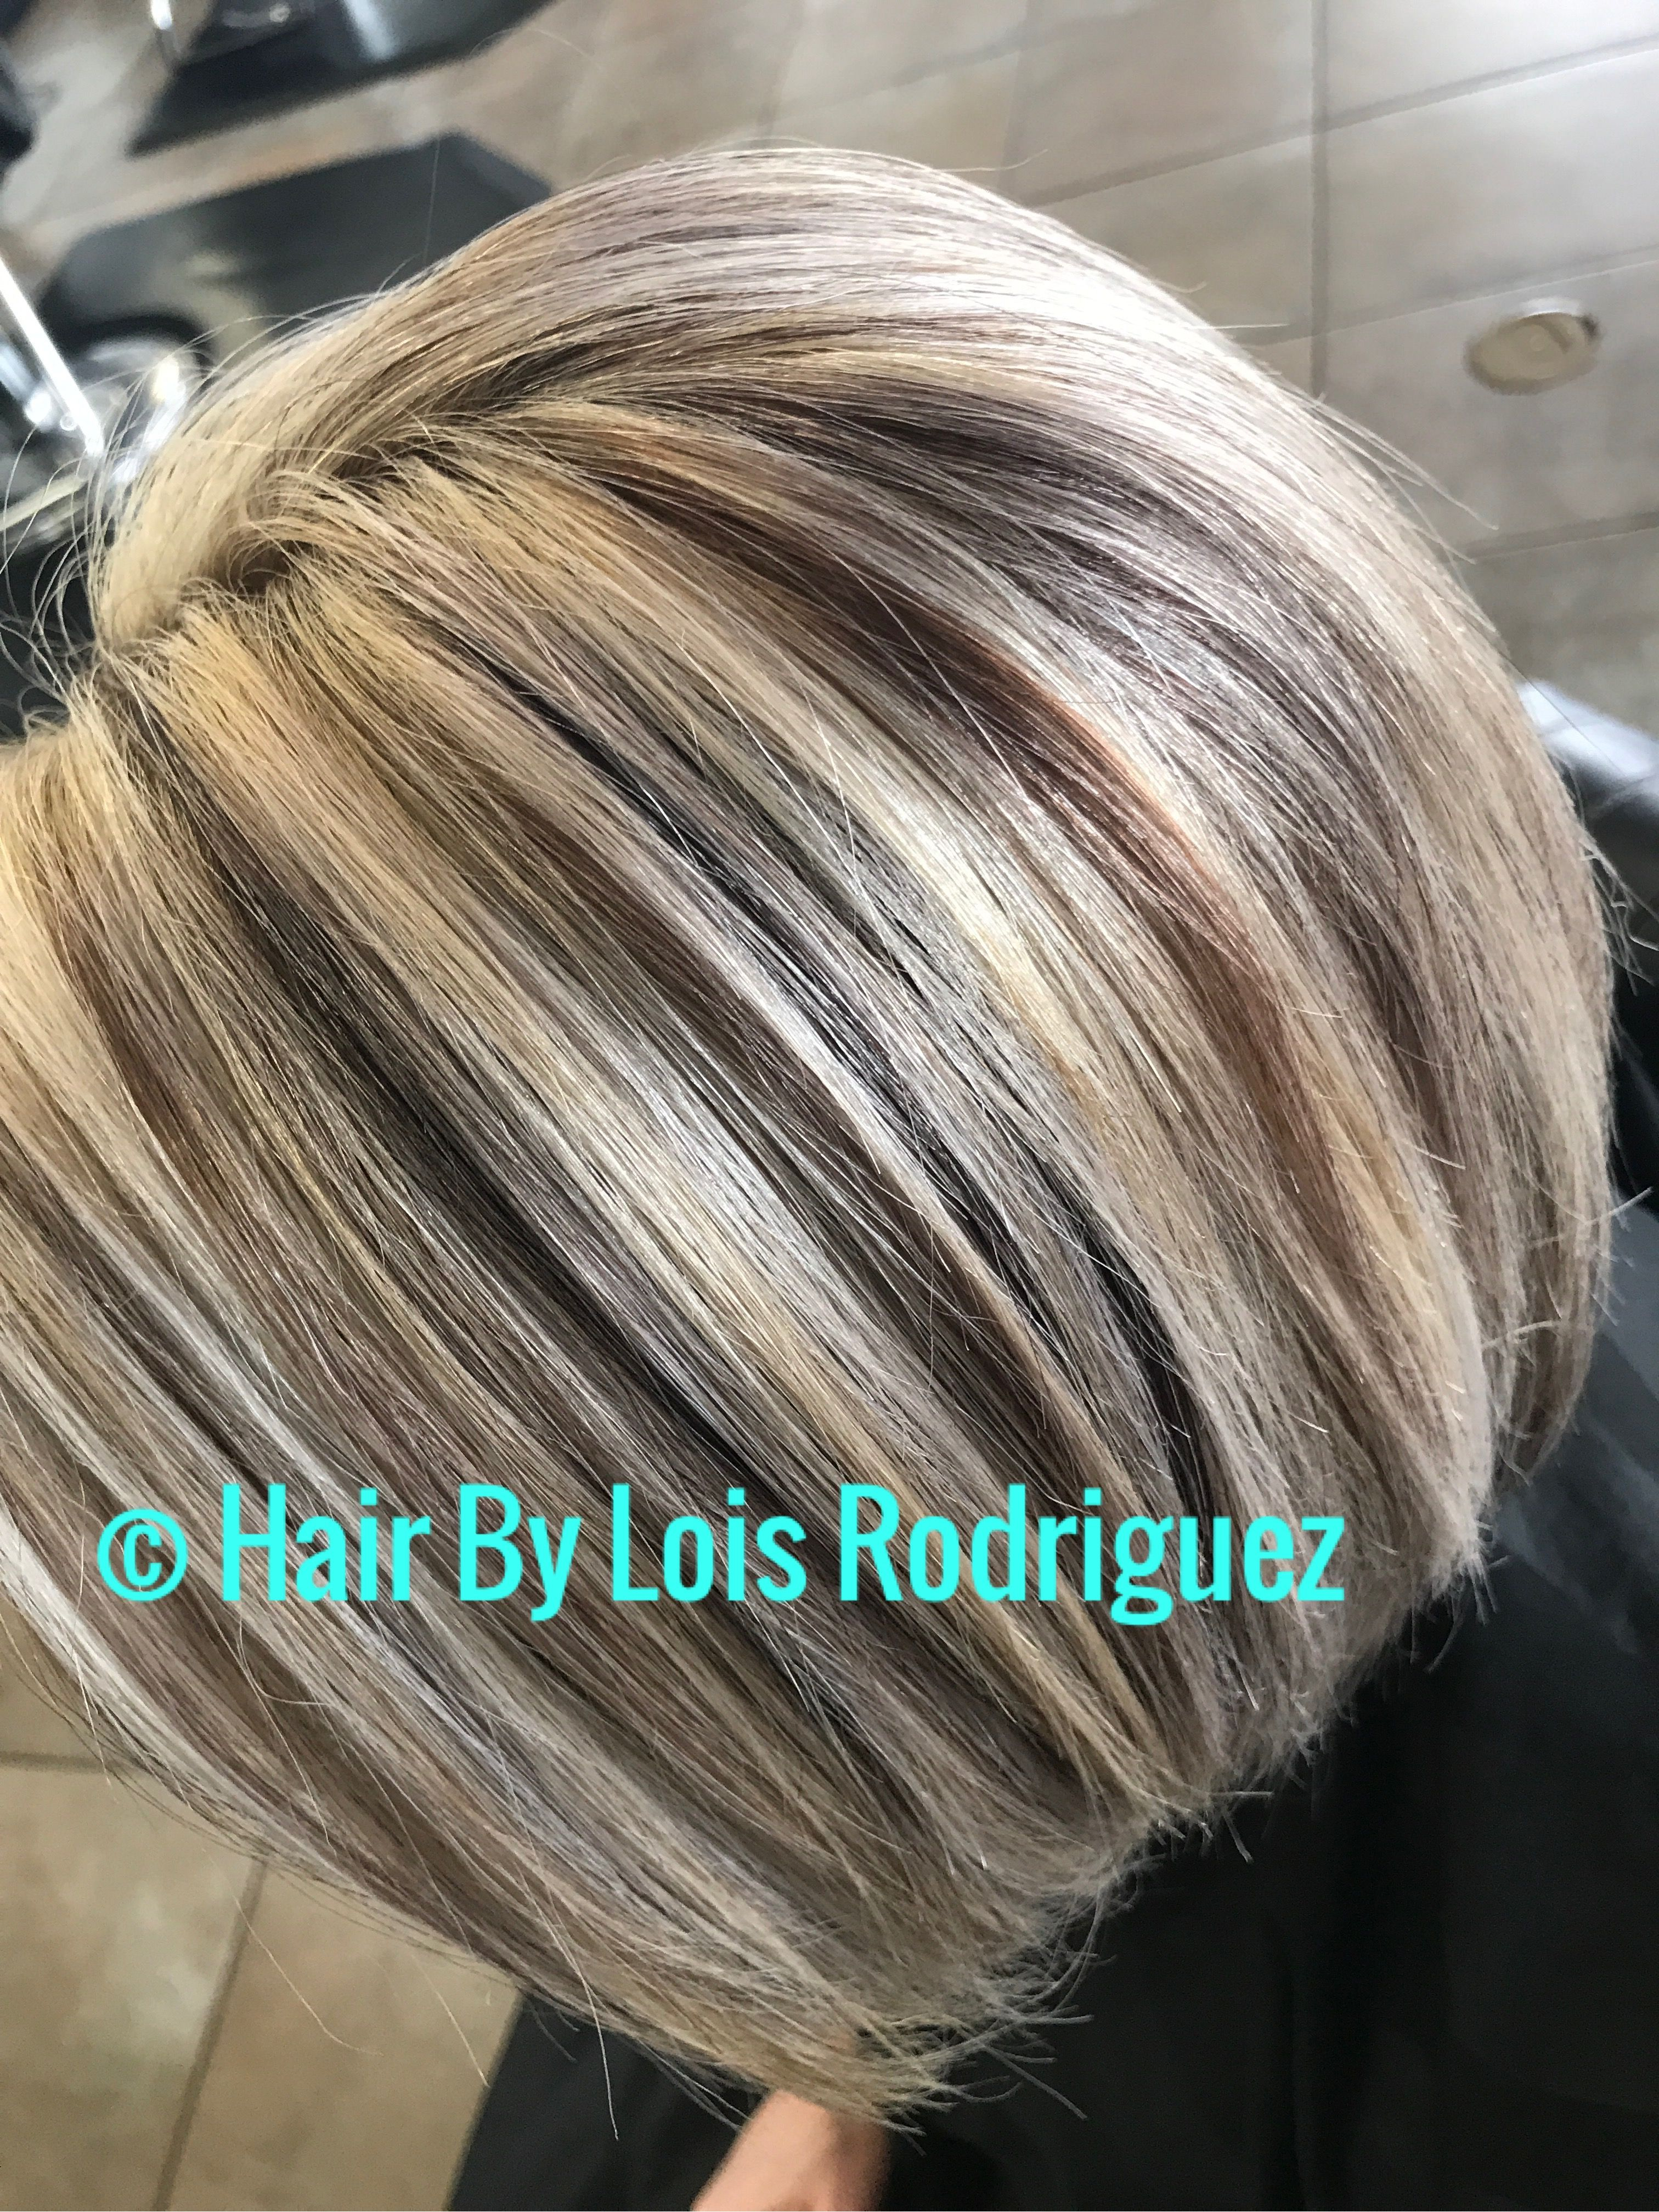 22 Short Hair With Highlights And Lowlights Pics